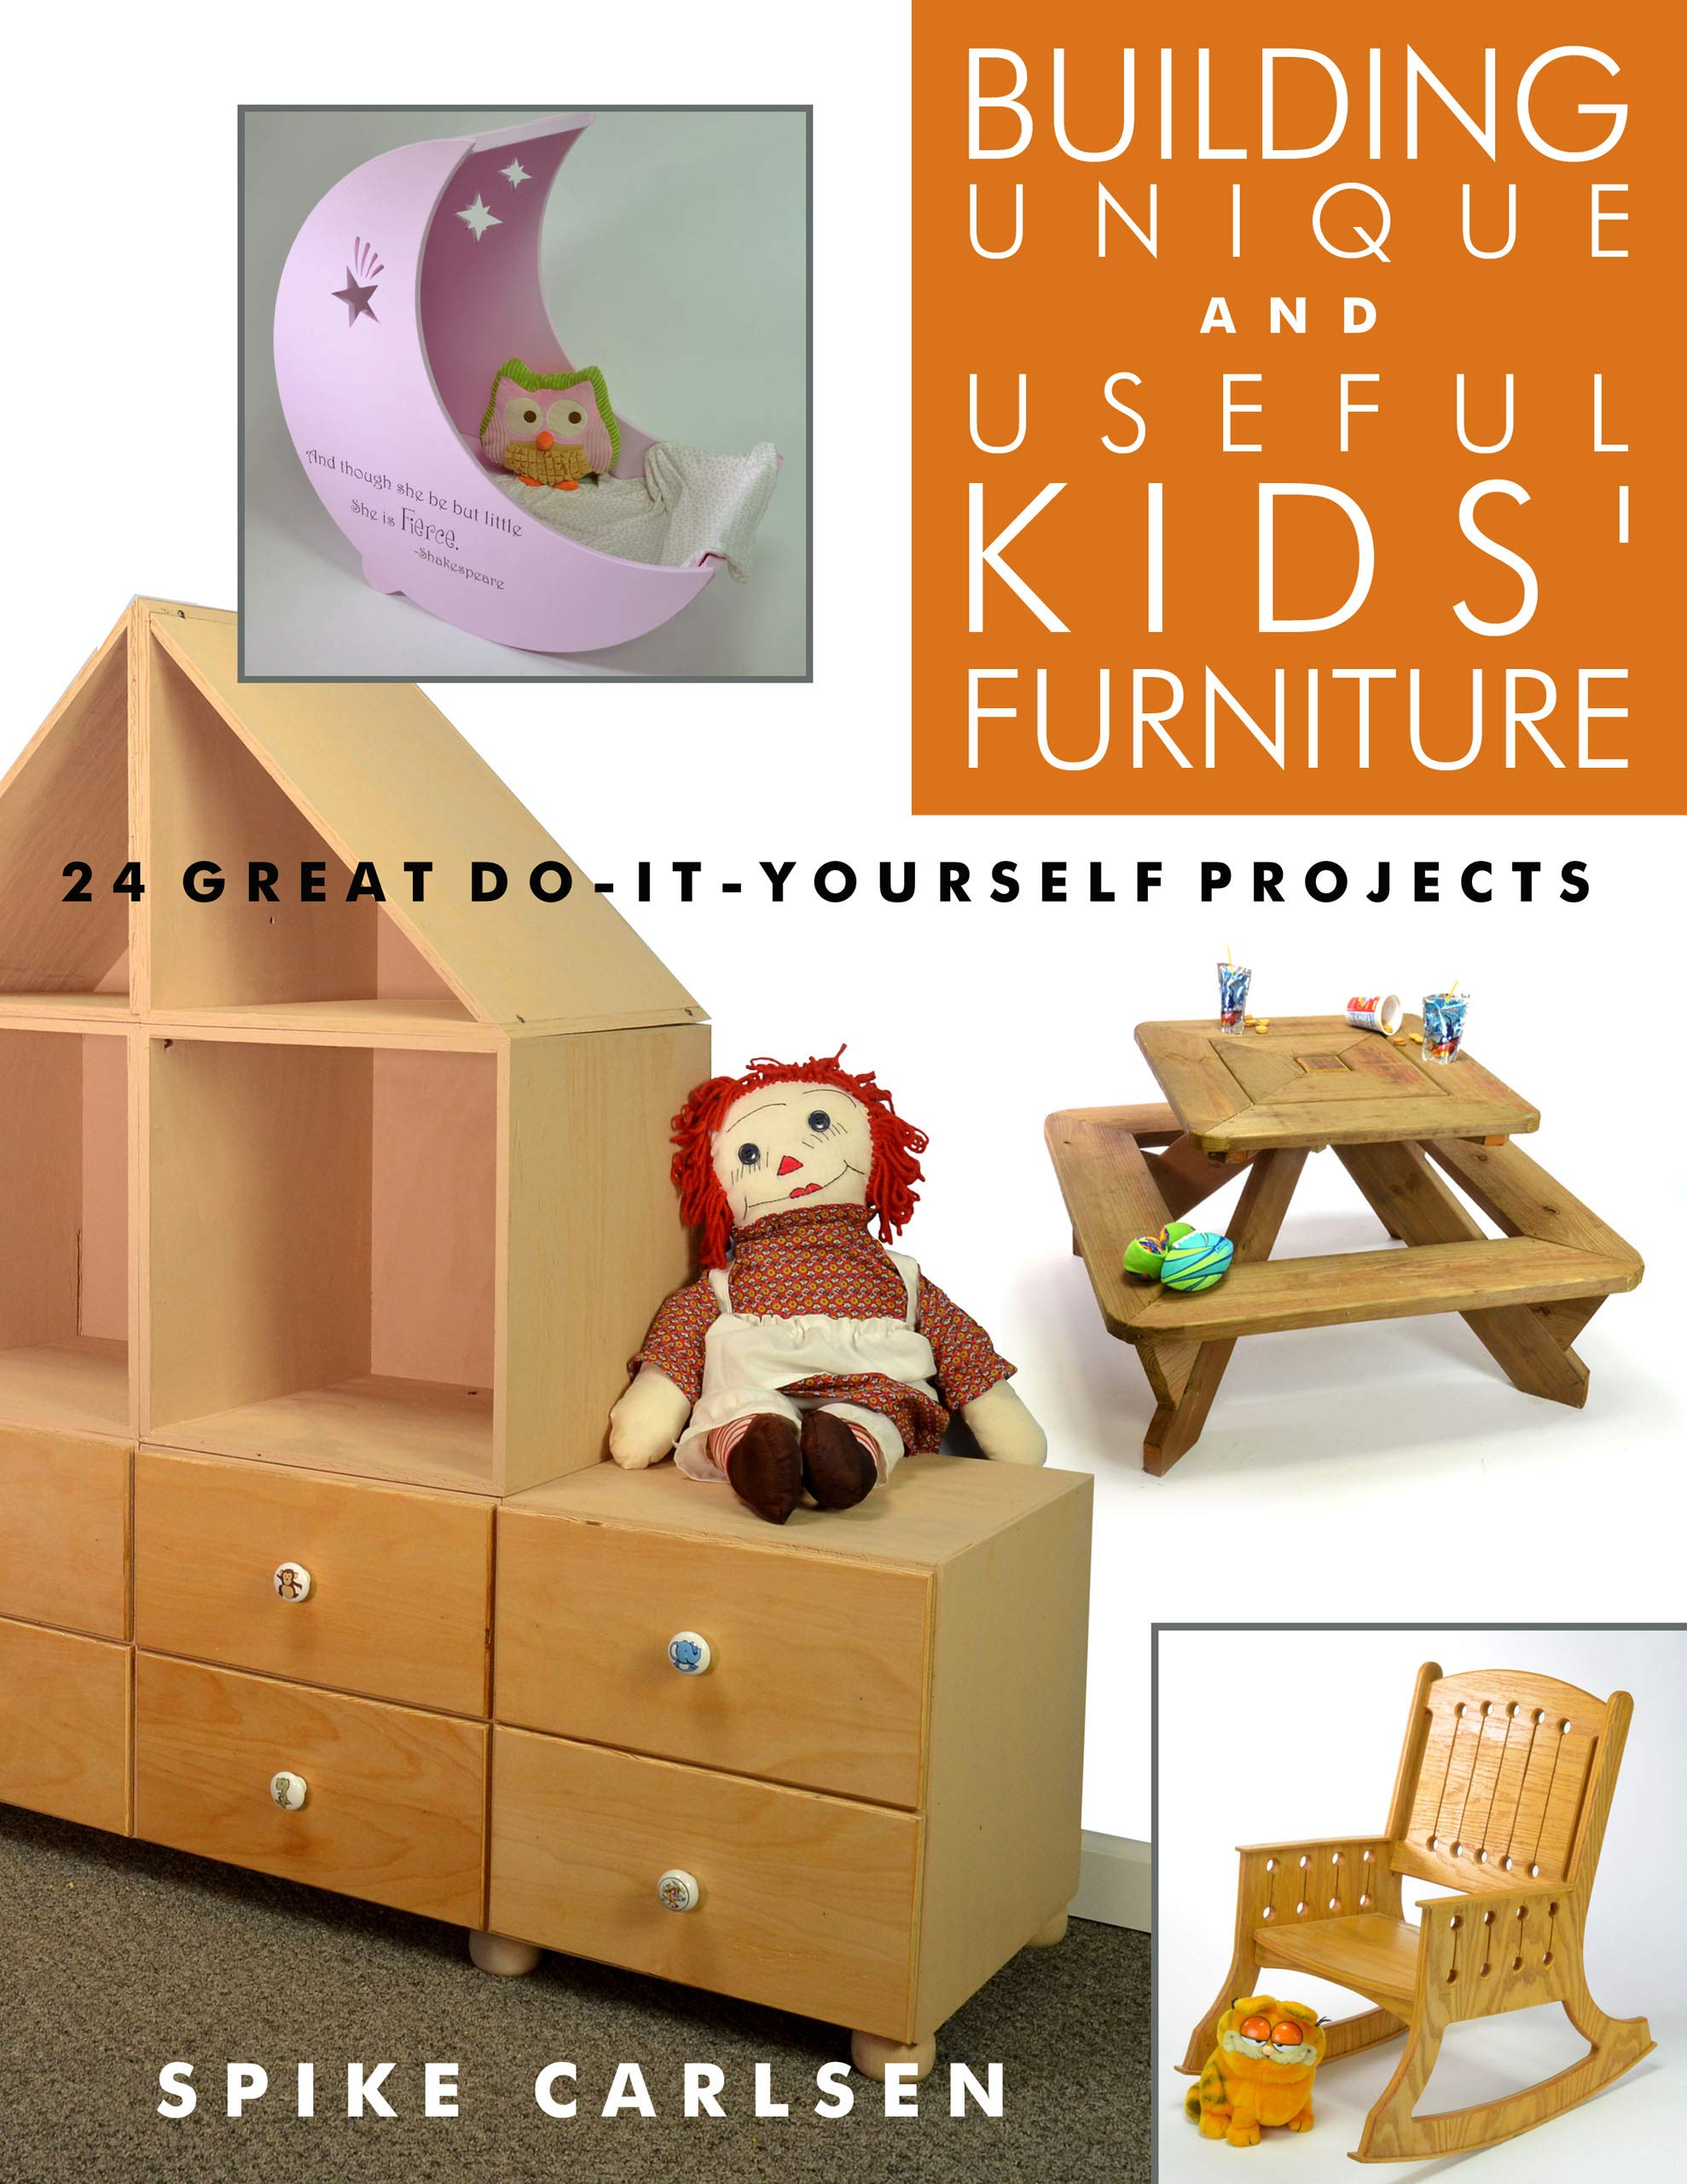 Building unique and useful kids furniture 24 great do it yourself projects spike carlsen 9781610353250 amazon com books